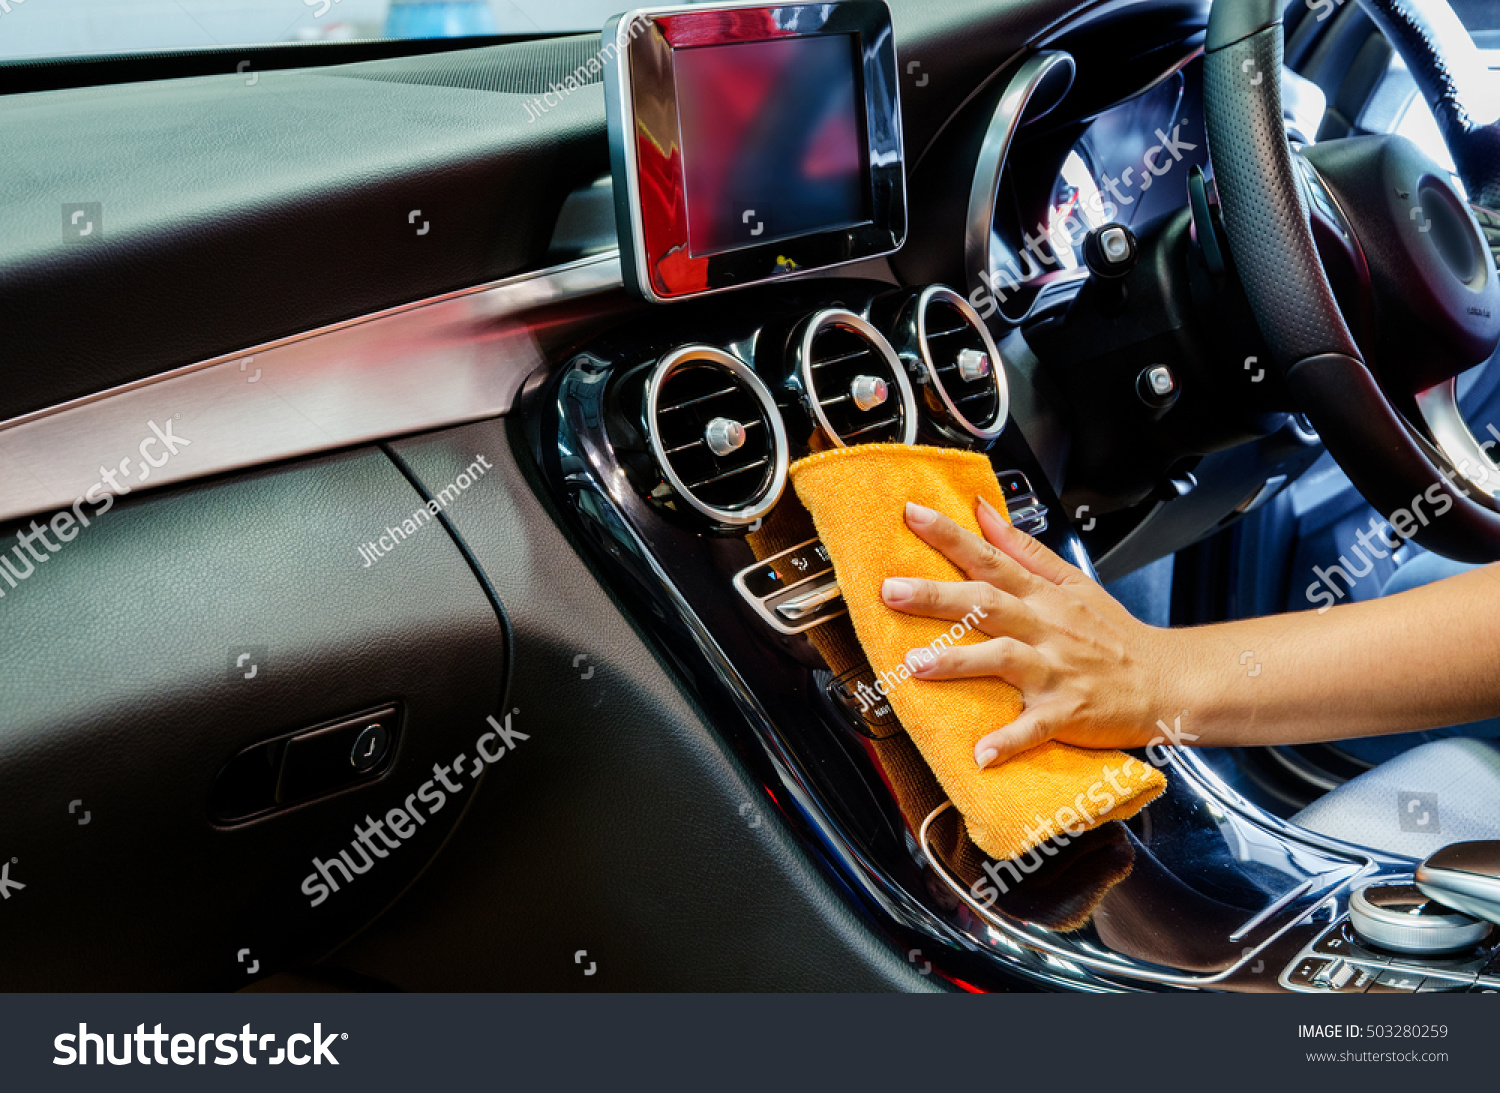 hand orange microfiber cloth cleaning interior stock photo 503280259 shutterstock. Black Bedroom Furniture Sets. Home Design Ideas